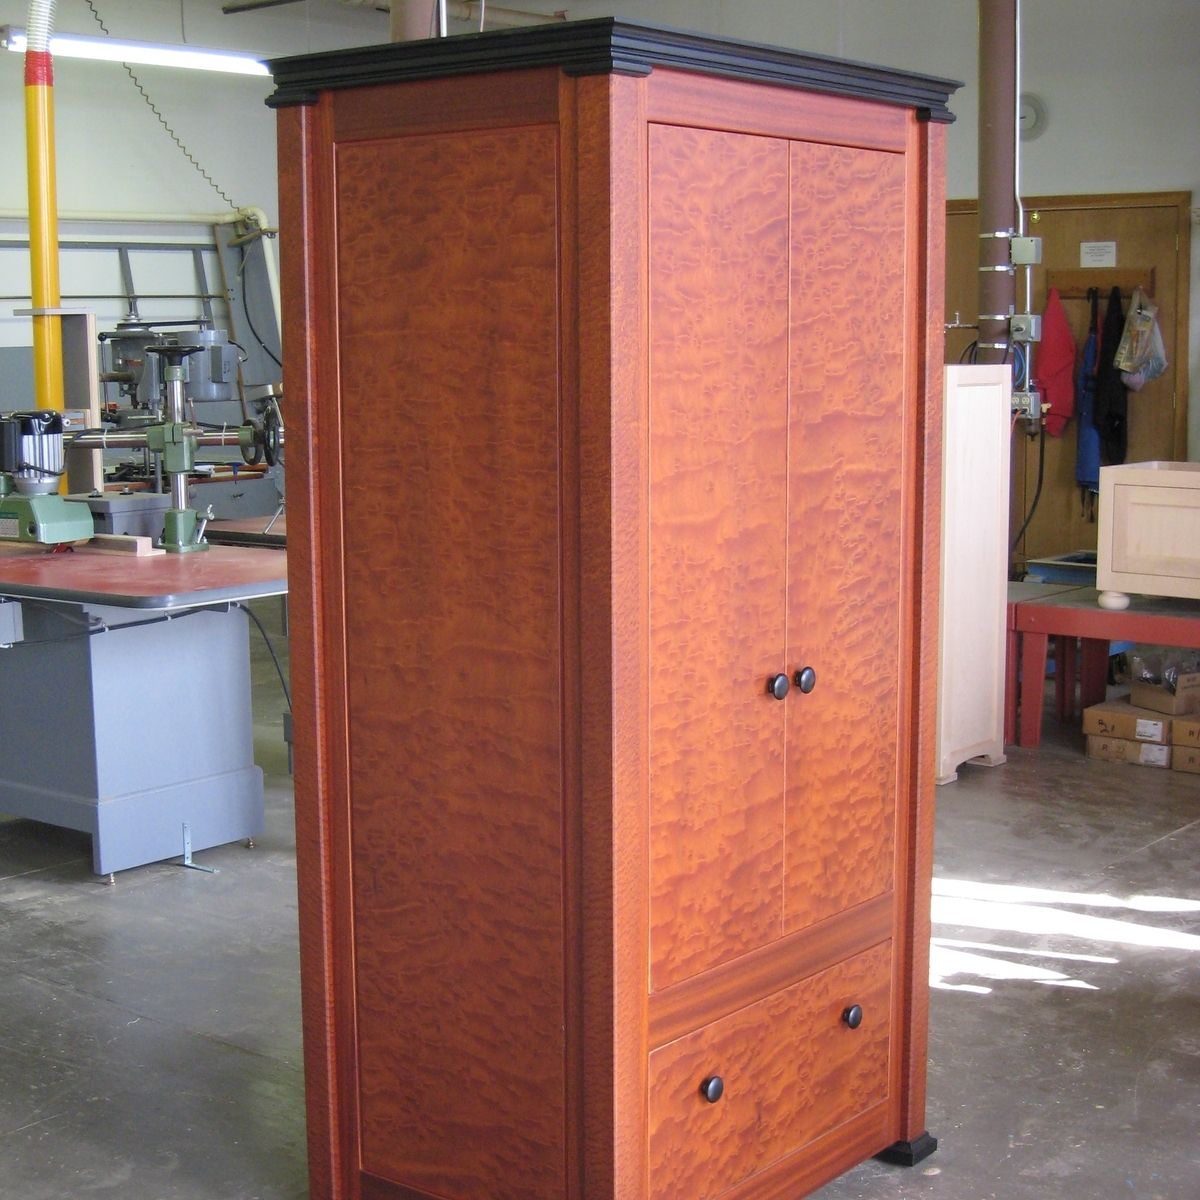 Clothing Armoire Wardrobe ~ Handmade personal armoire clothing wardrobe by rosette